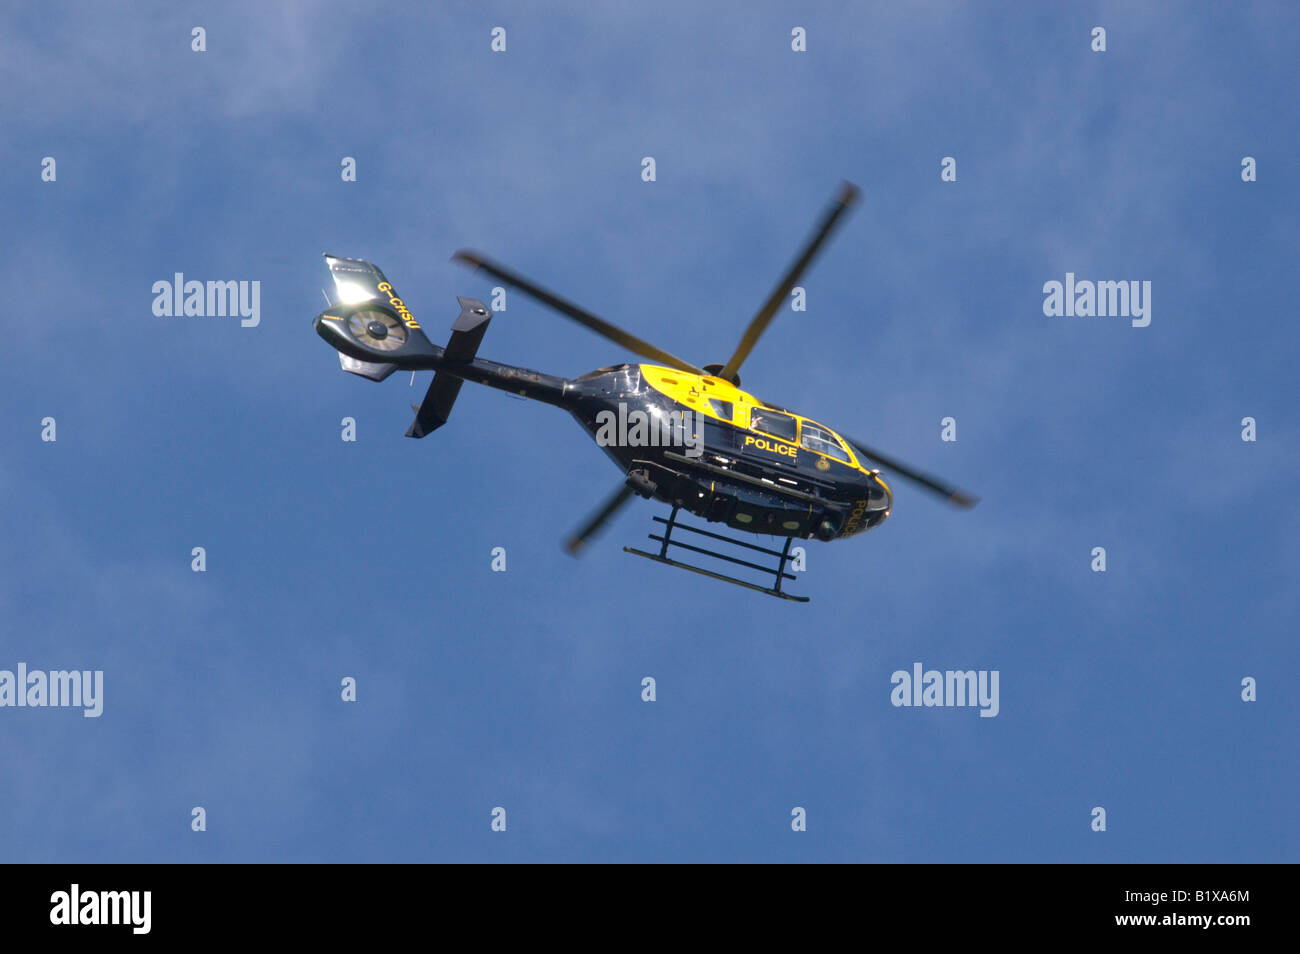 A Thames Valley Police helicopter searching the fields near Ma rlow, Buckinghamshire, UK 4/5 - Stock Image